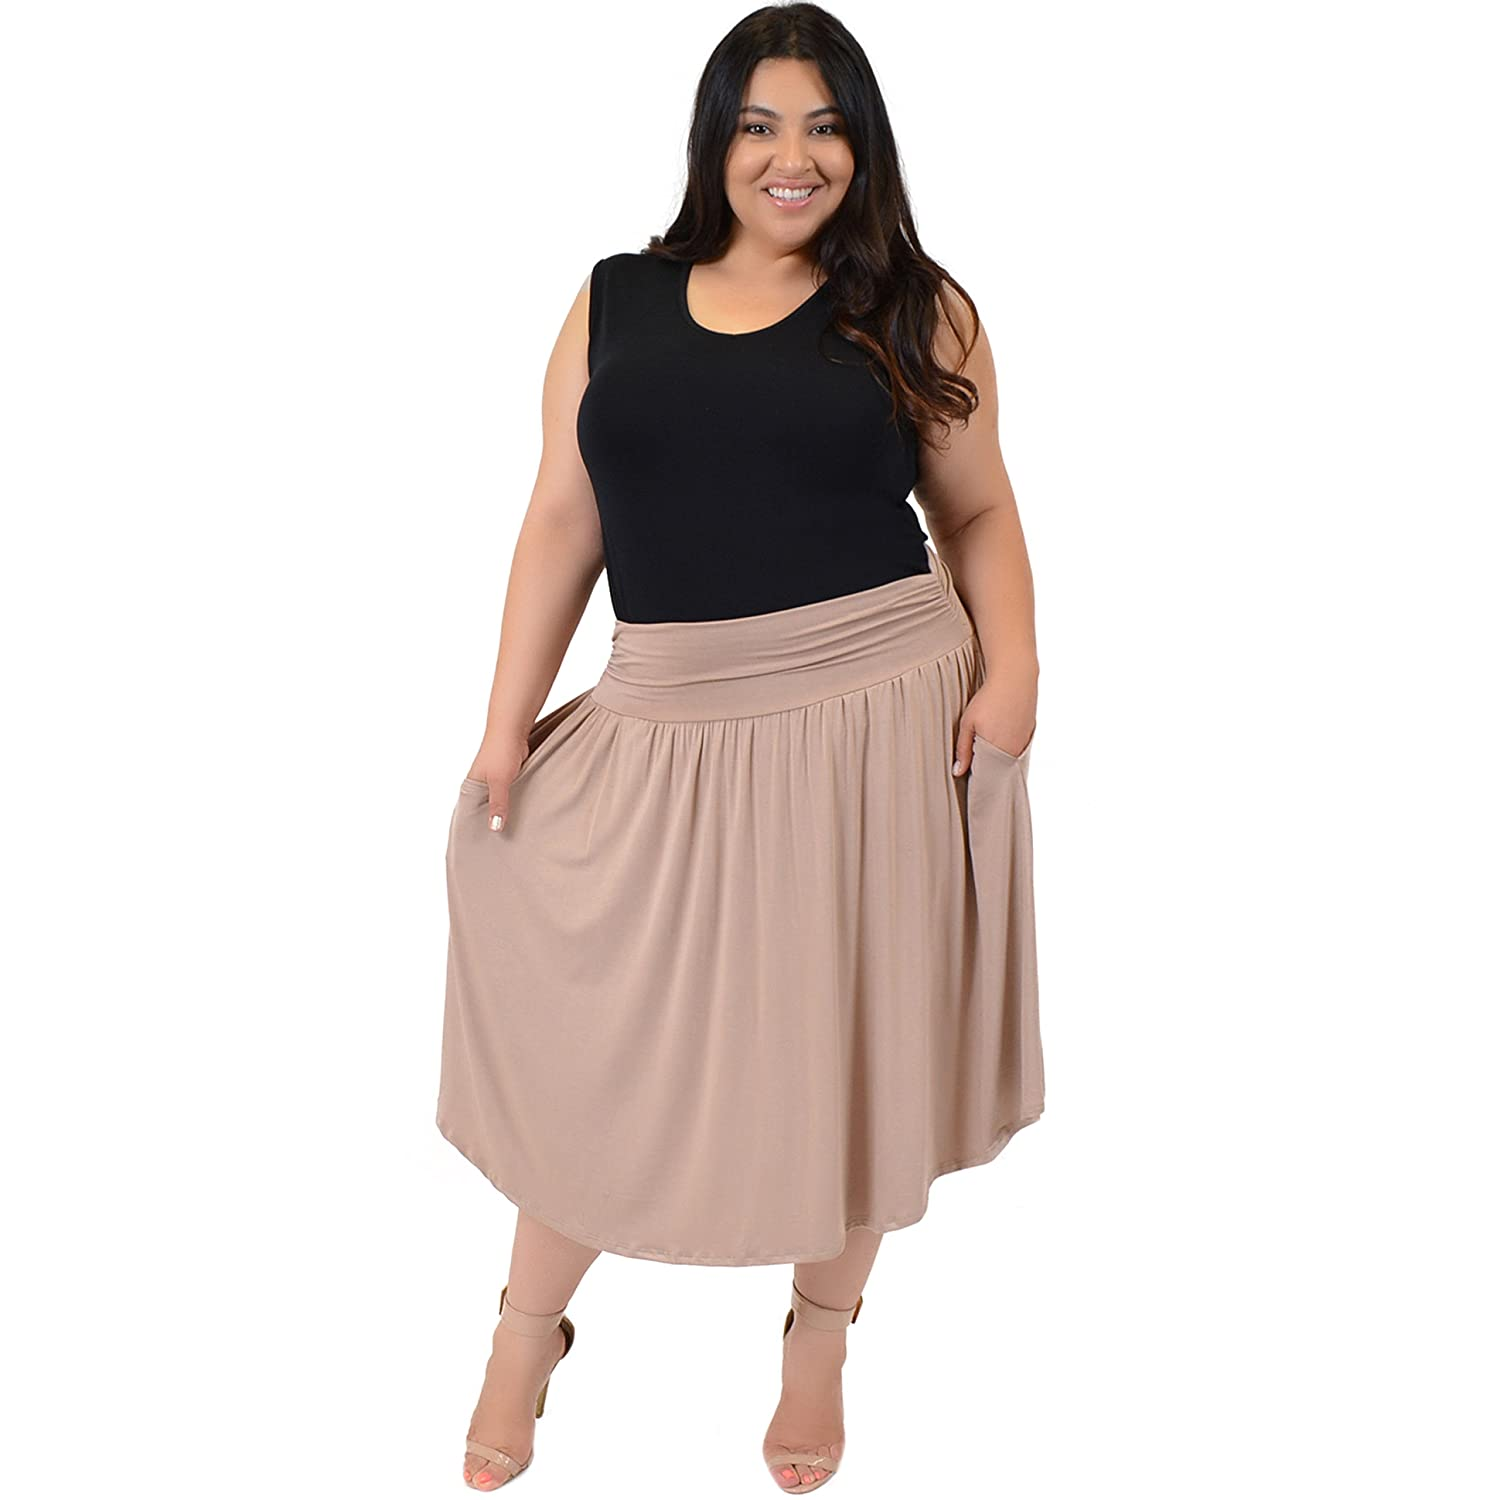 efc0372e52d56 Stretch is Comfort Women s Pocket Skirt at Amazon Women s Clothing store